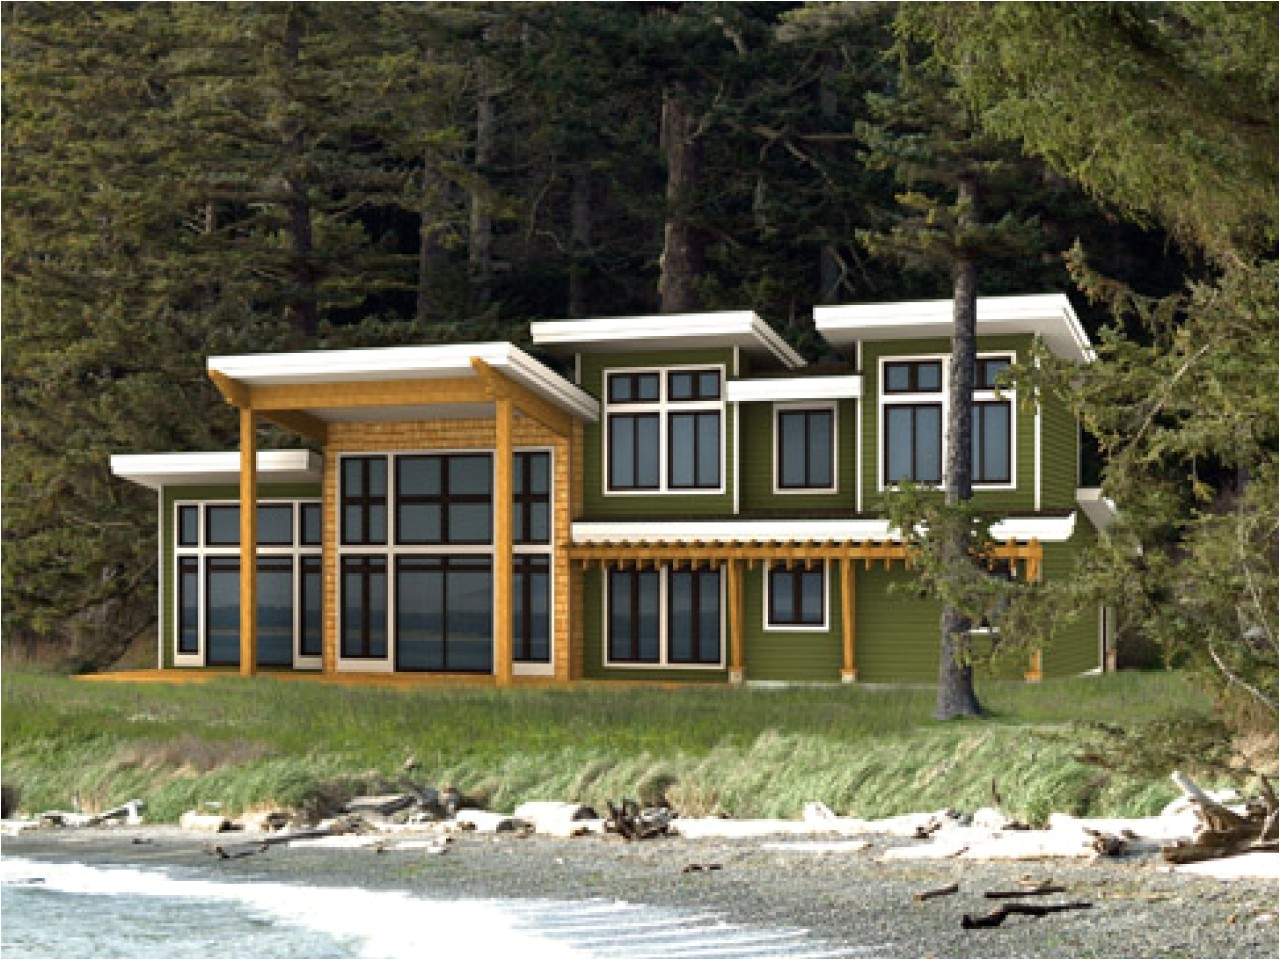 Modern Post and Beam Home Plans Small Post and Beam Homes Modern Post and Beam Home Plans